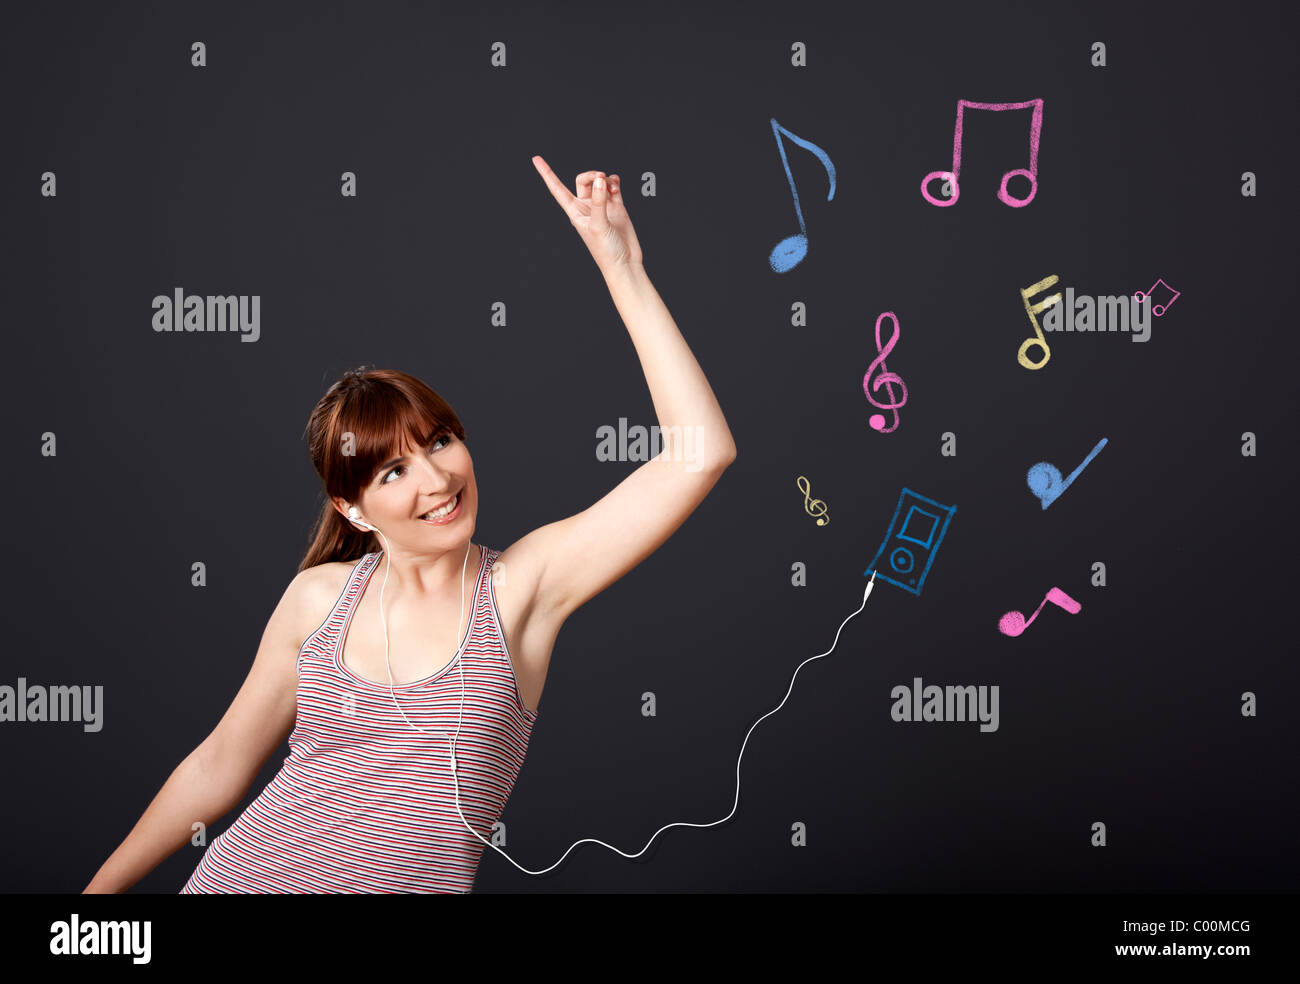 Young woman dancing and listen music with musical notes drawn with chalk on a black wall - Stock Image